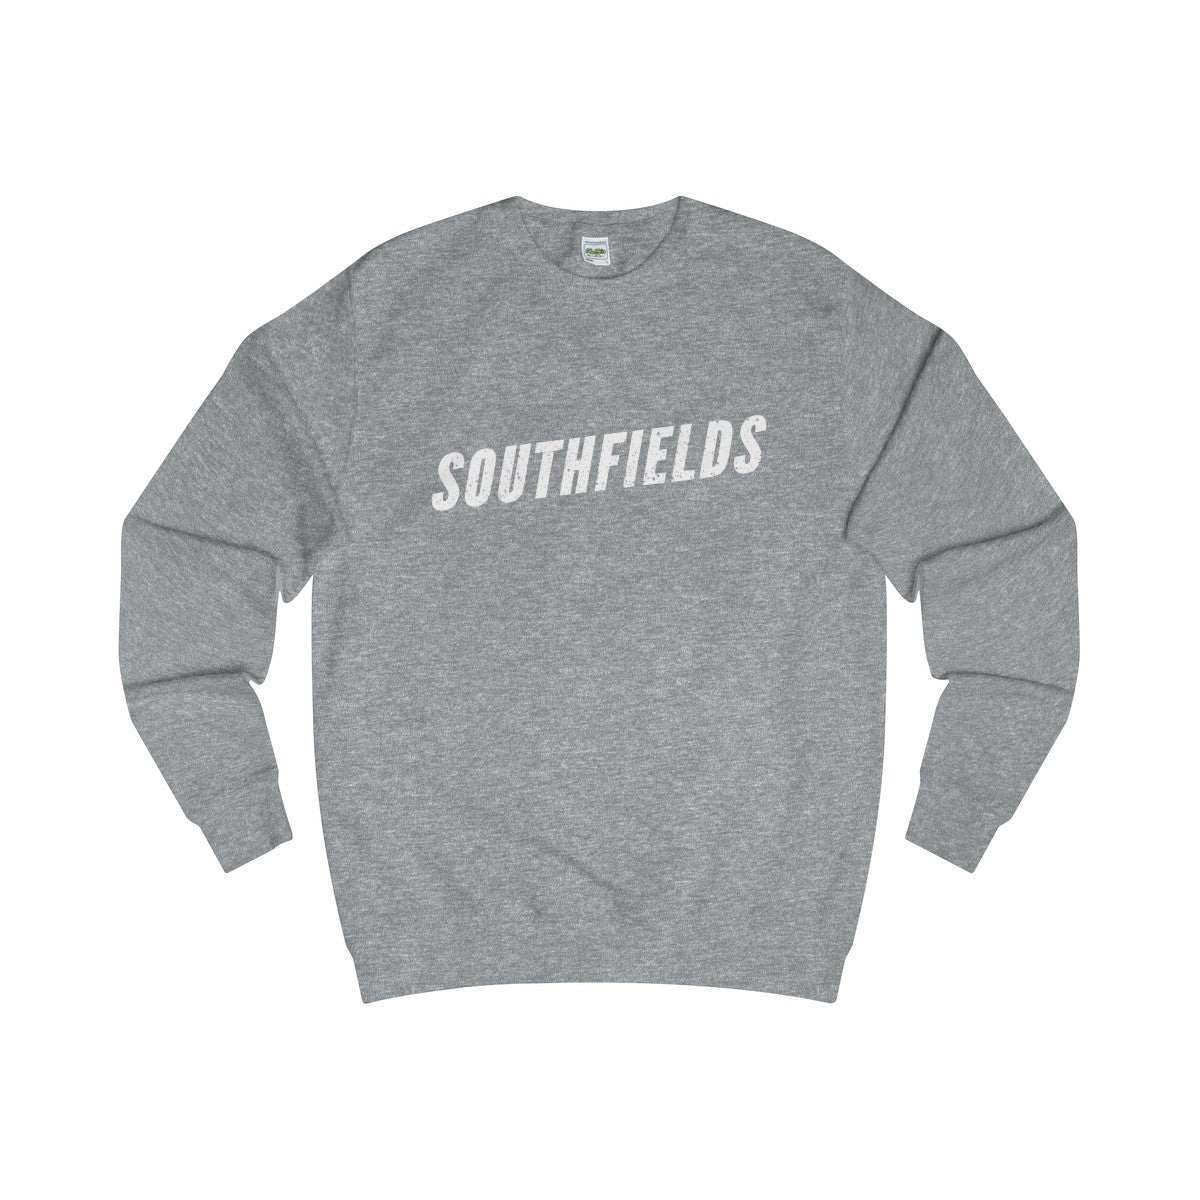 Southfields Sweater